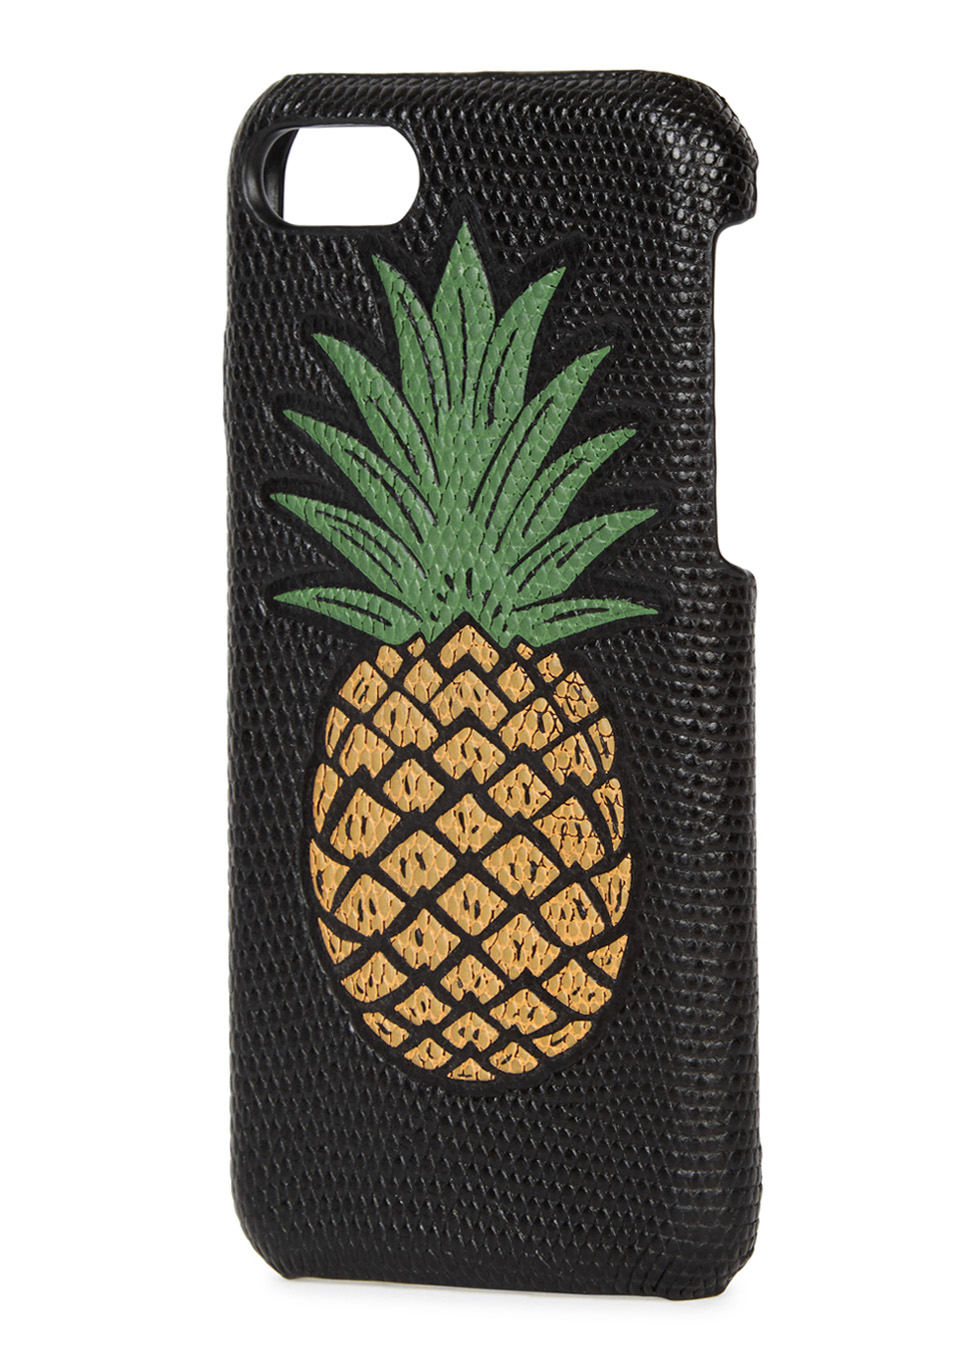 Pineapple-print leather iPhone 7 case - The Case Factory